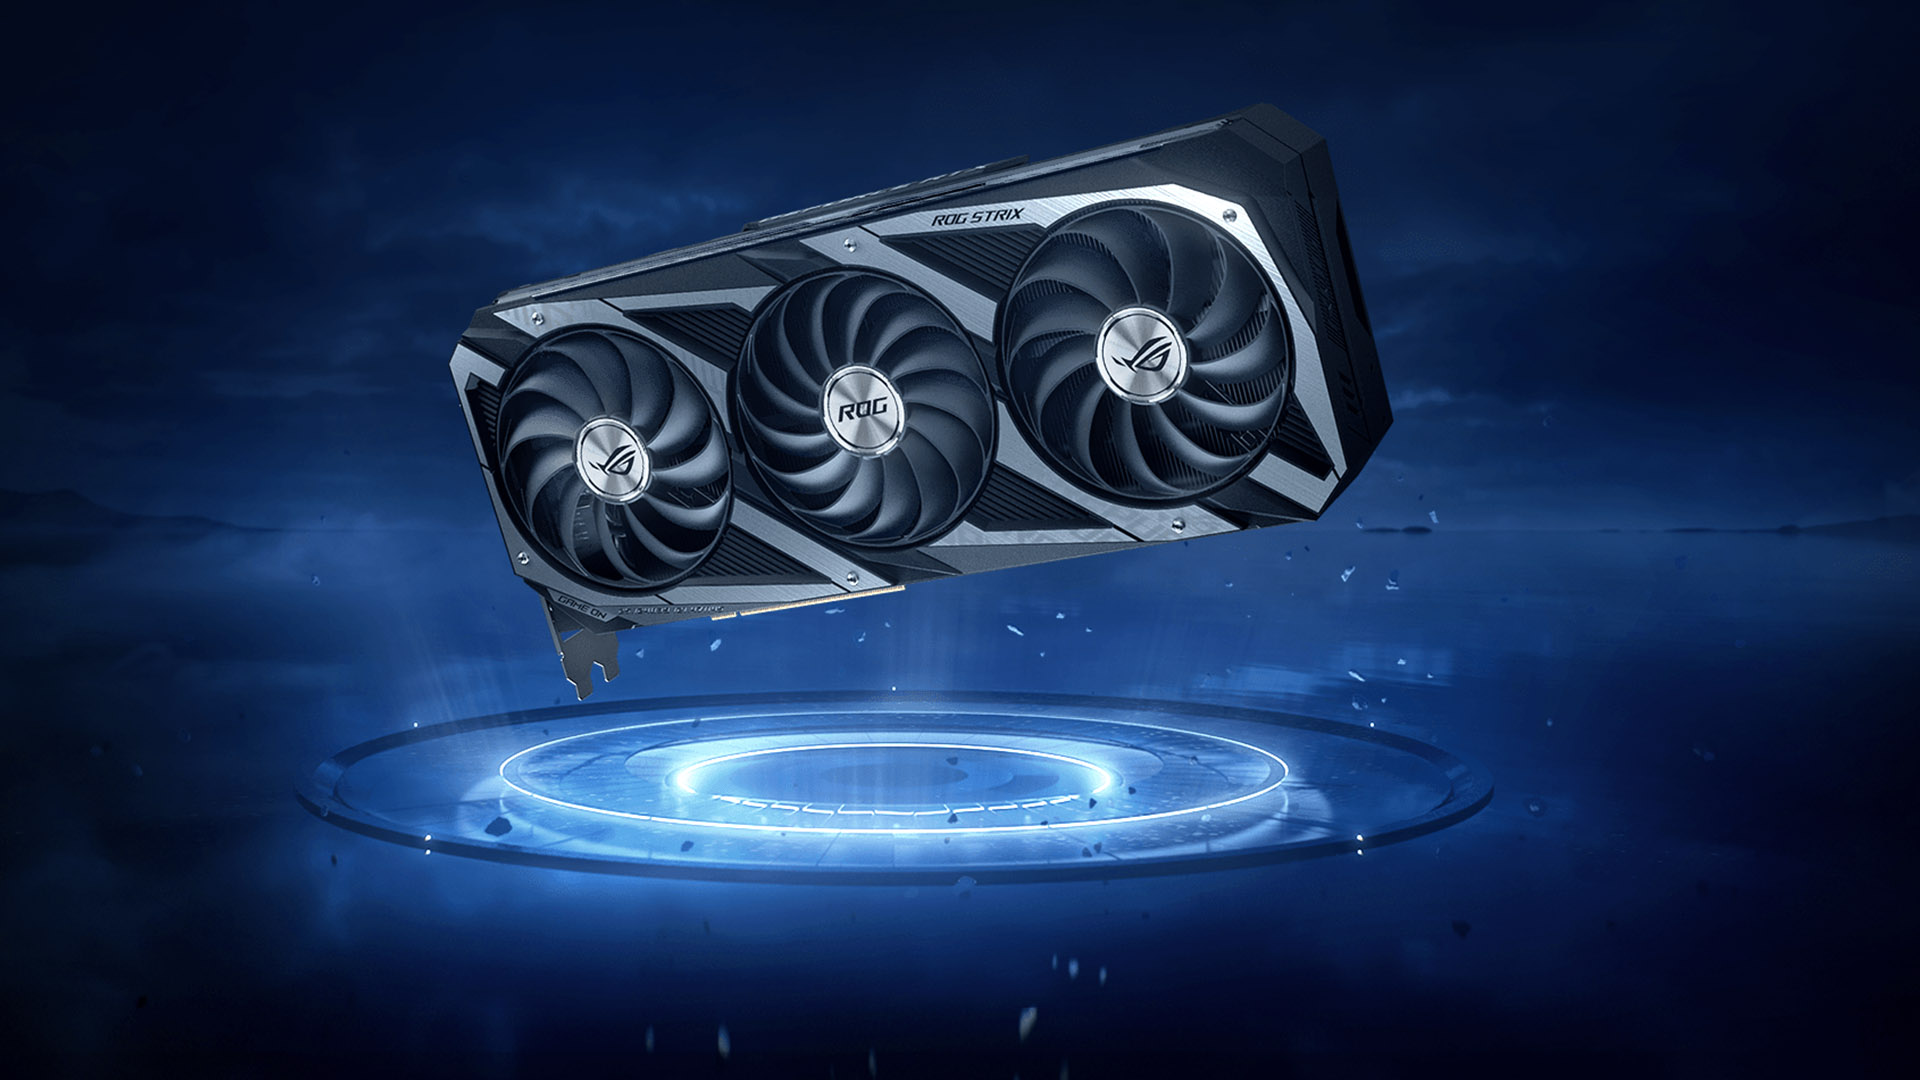 Graphics card prices could be rising further with increased memory costs